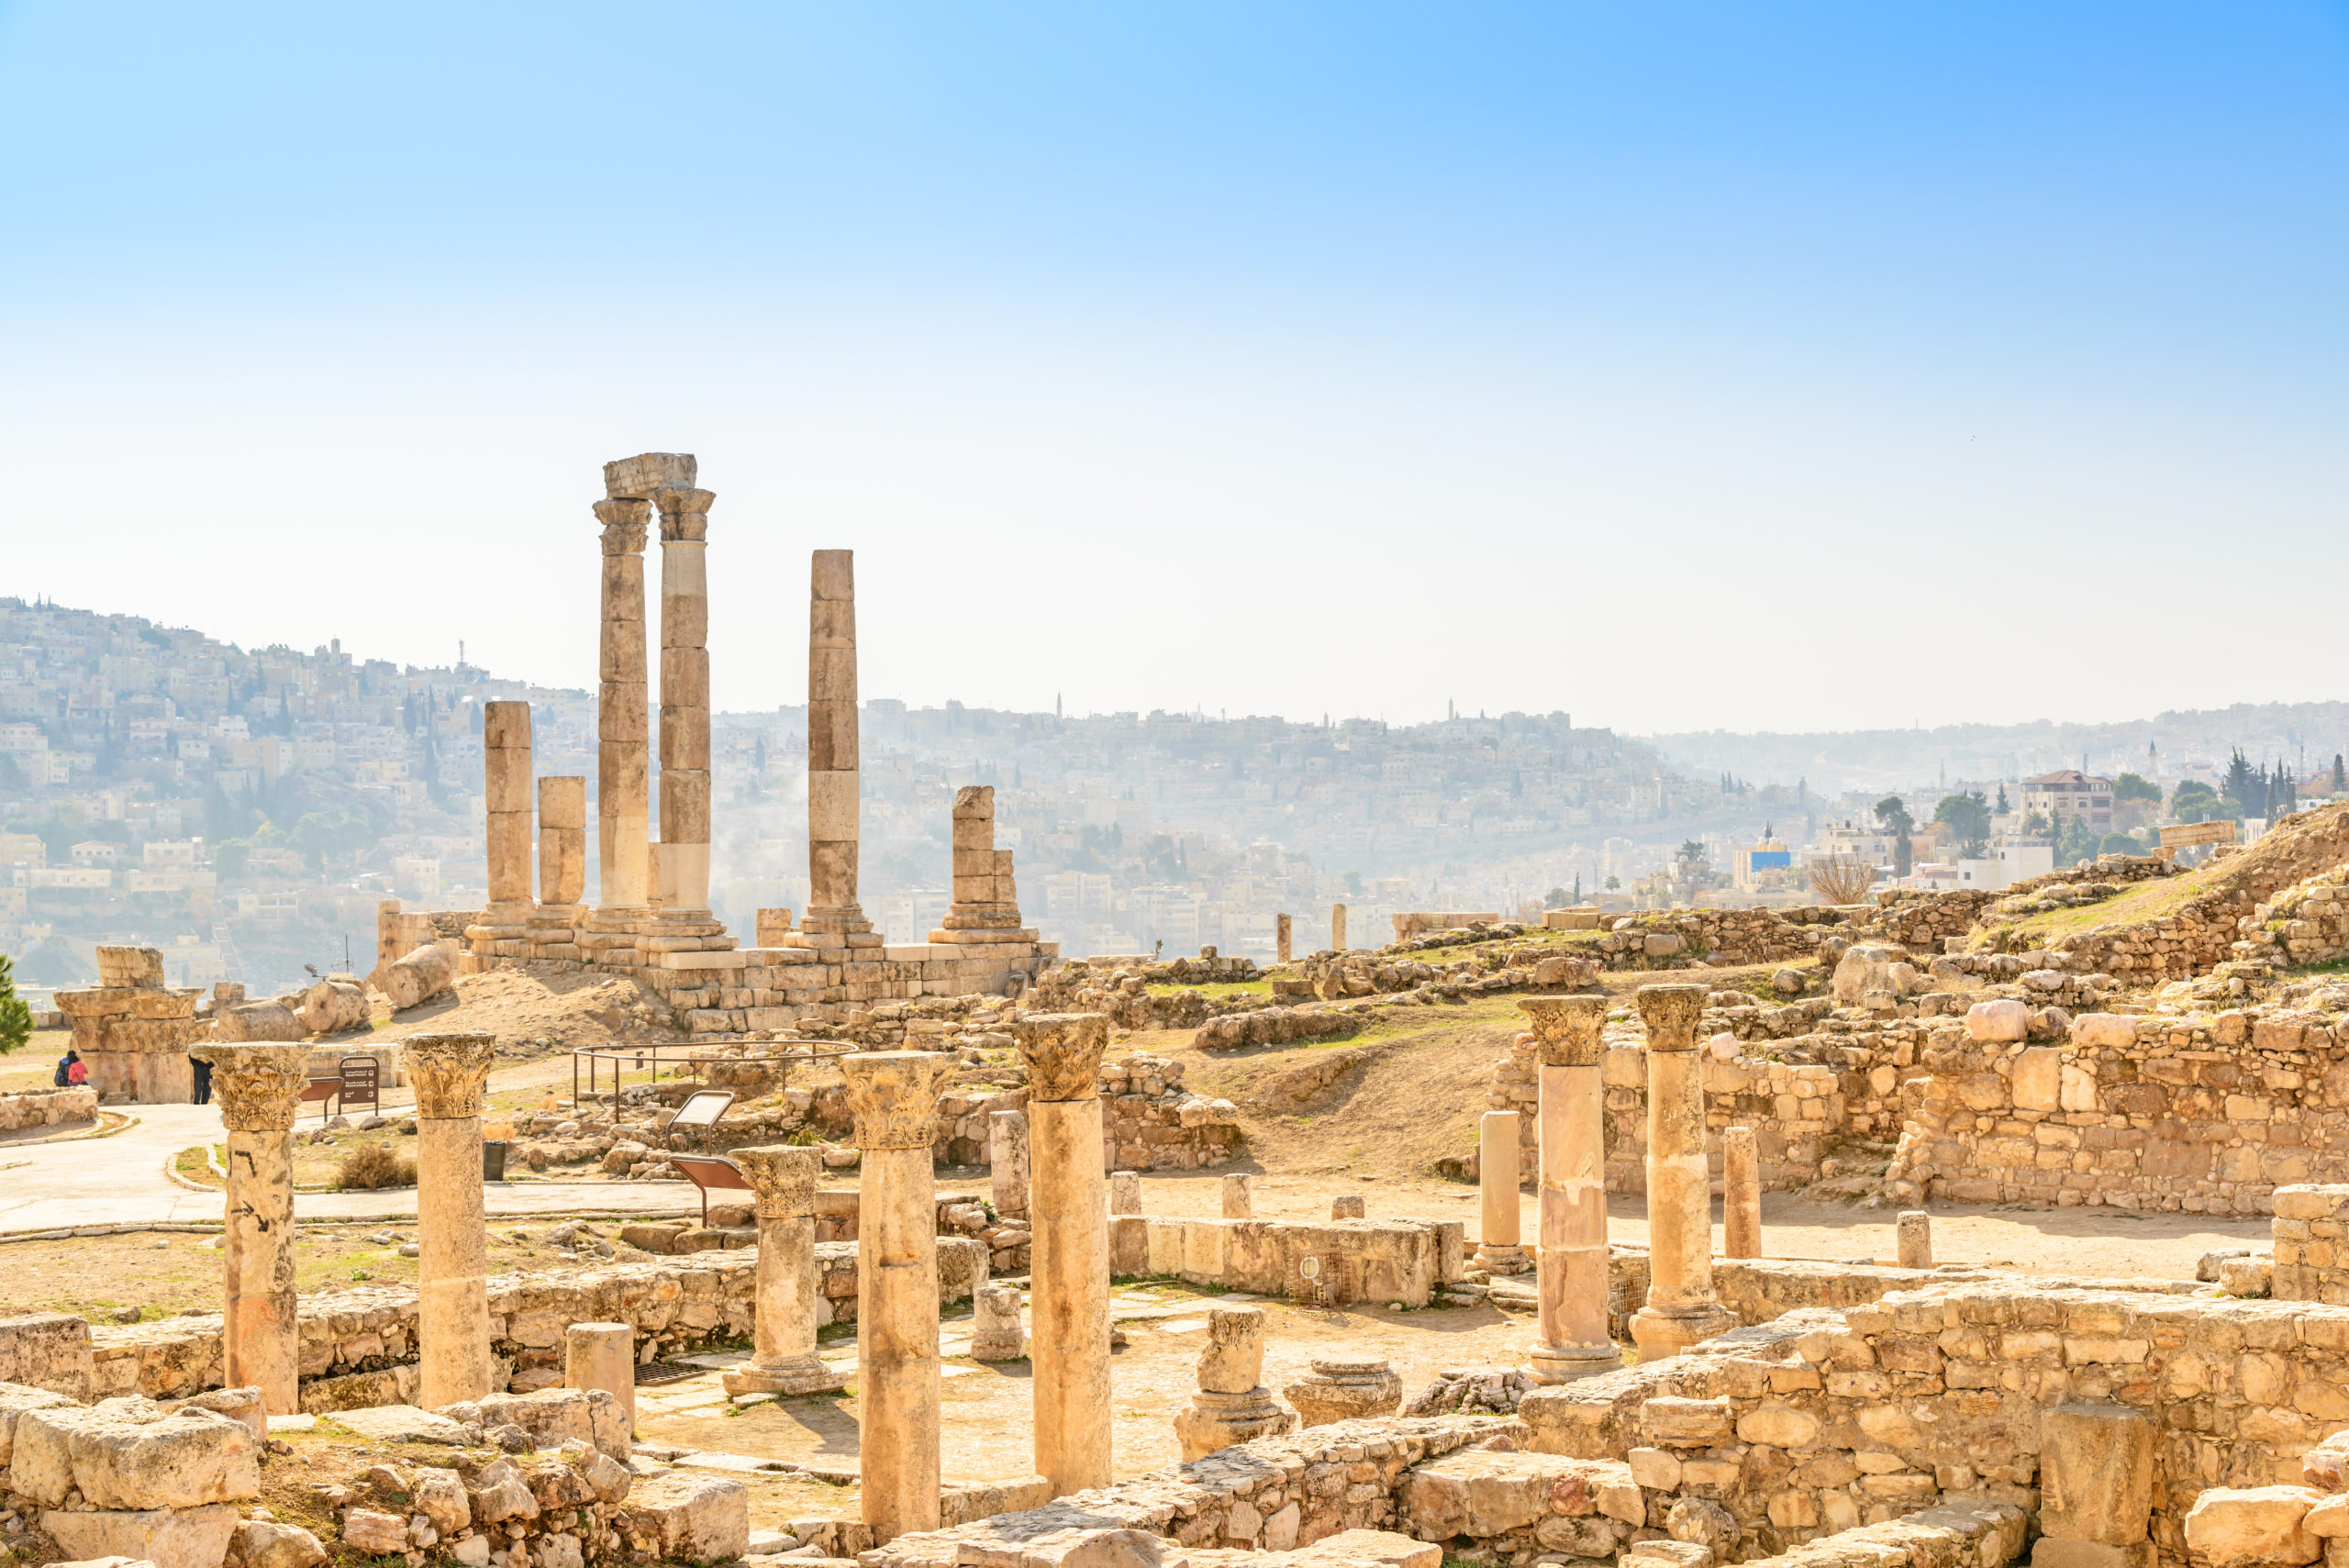 Climb the highest hill in Amman with us and enjoy the rich history and spectacular views from the Citadel. It is a view you don't want to miss